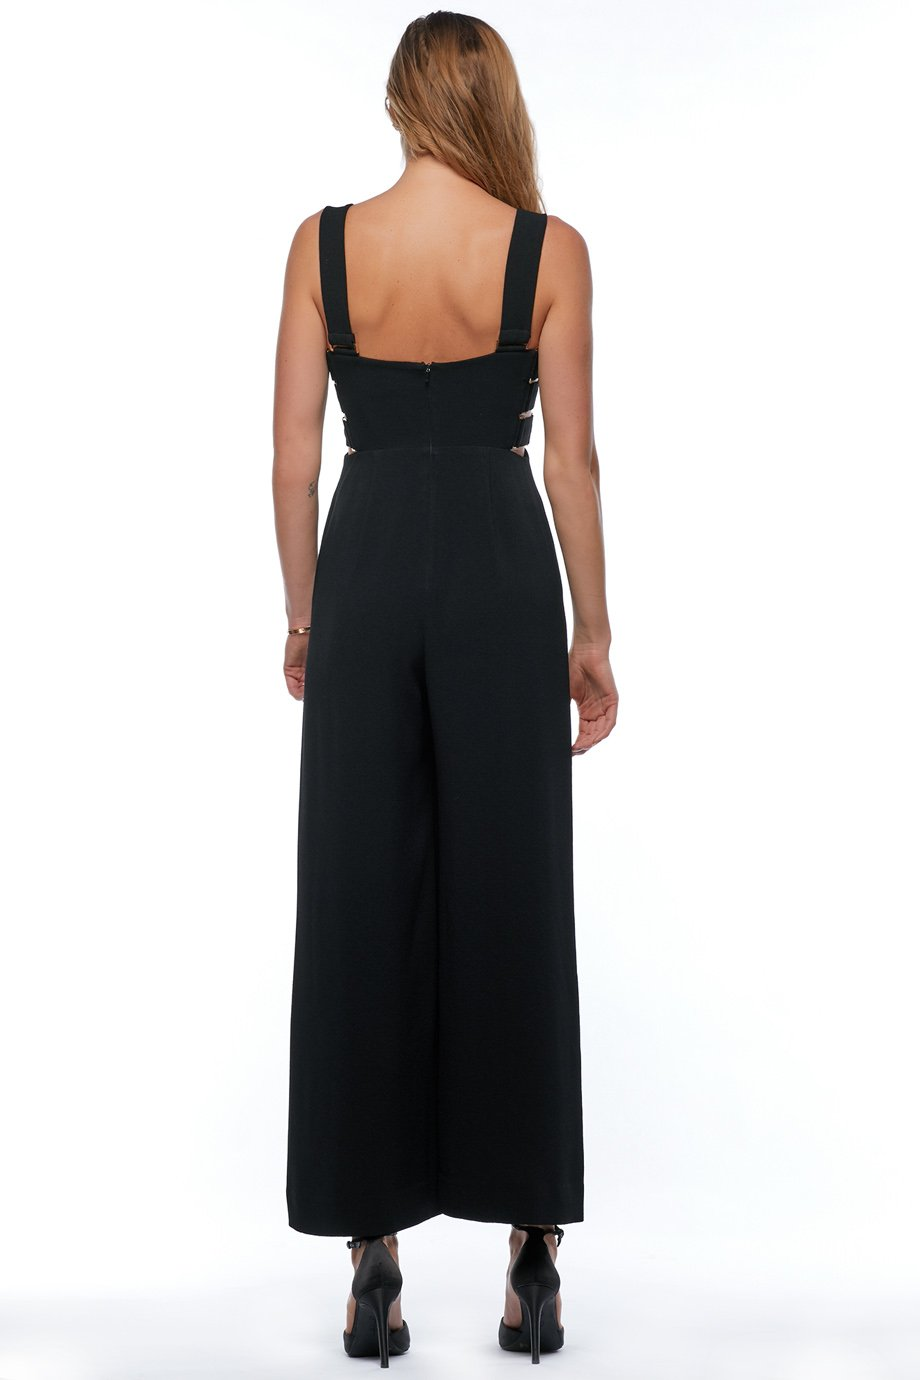 Zimmermann Black wide leg jumpsuit with cut out sides